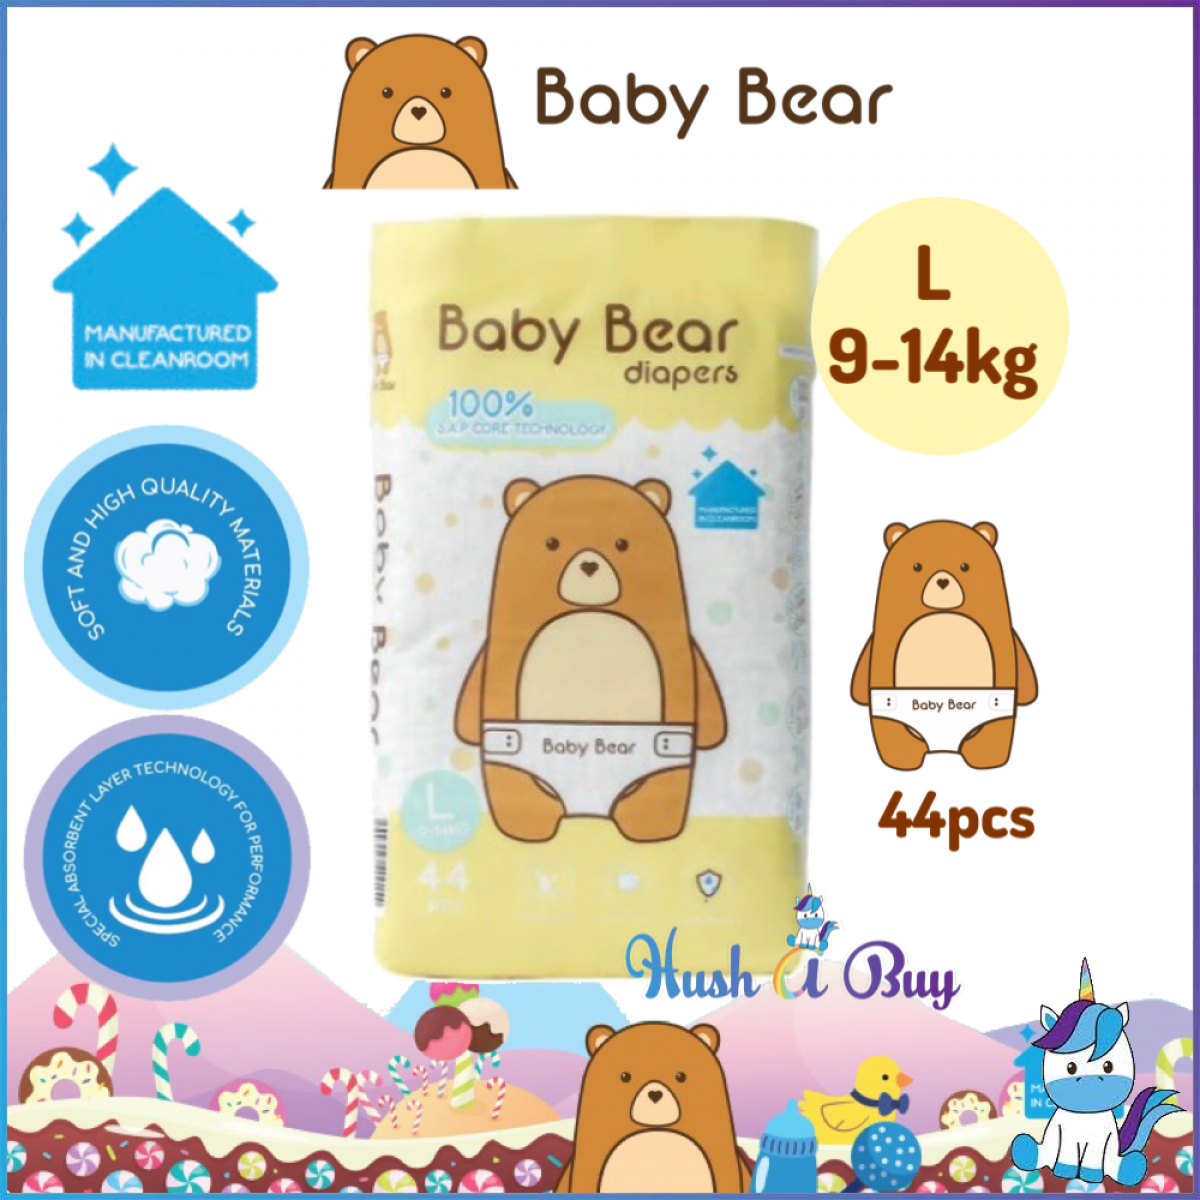 Baby Bear Diapers - Size L (44pcs)  9-14KG -  Manufactured in Clean Room